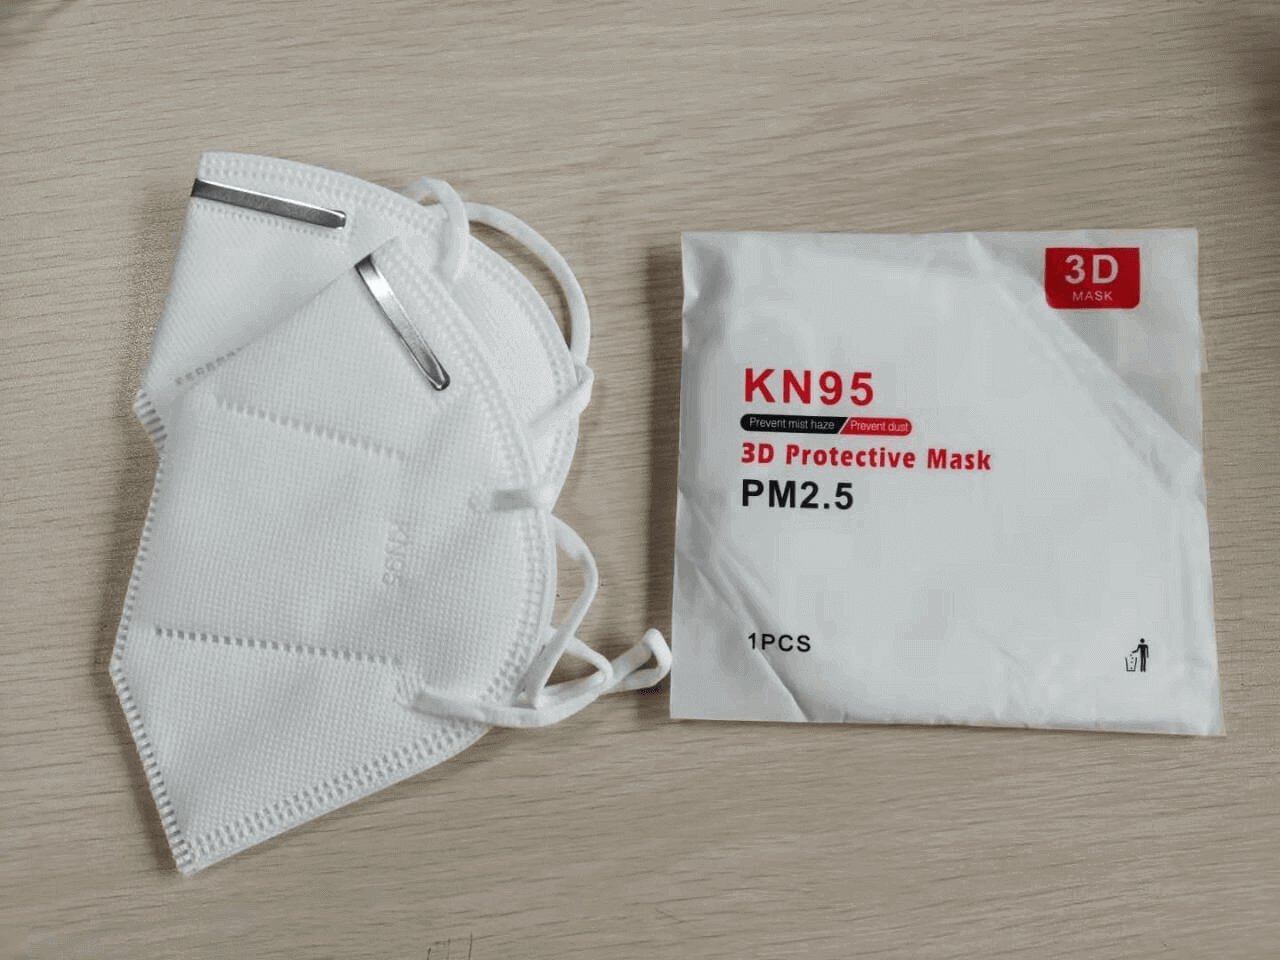 KN95 mask, tested face mask by lessdeal